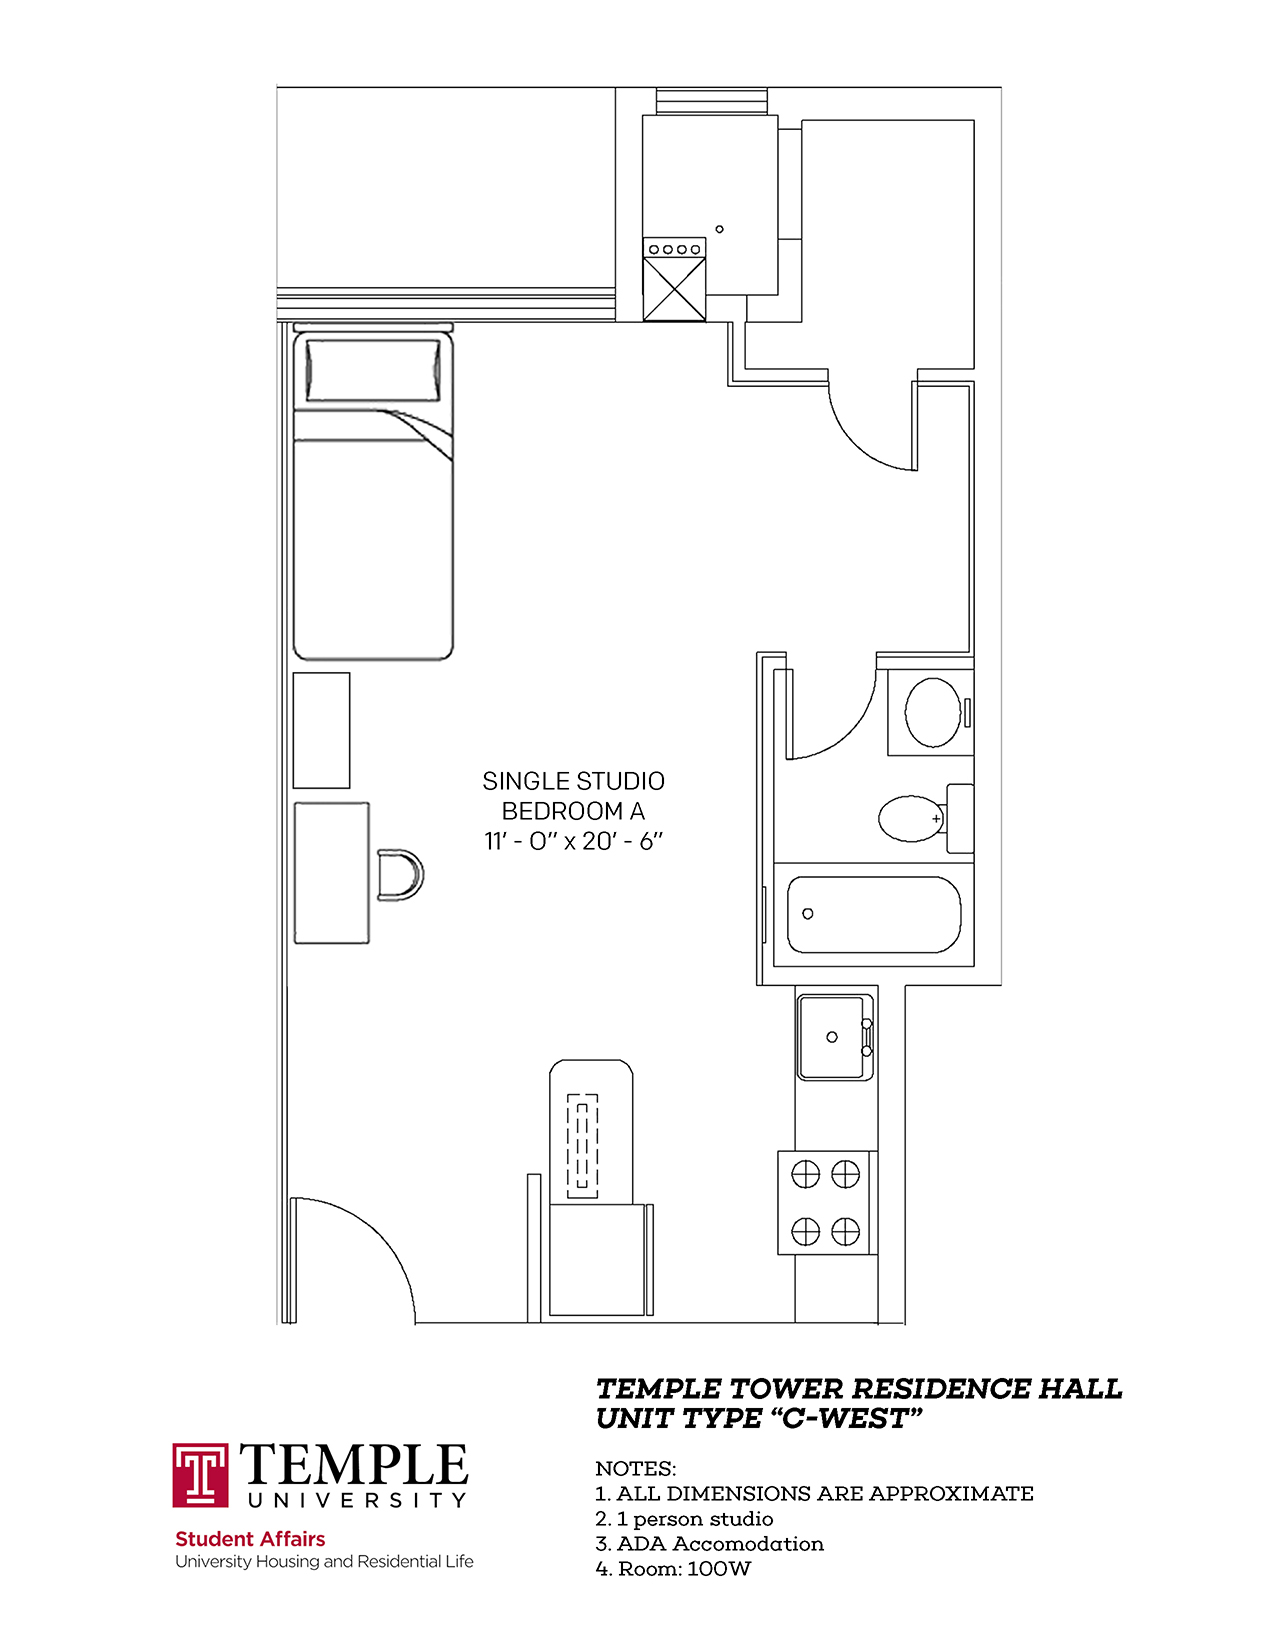 Temple Towers: Unit C West - 1 person, Studio Apartment